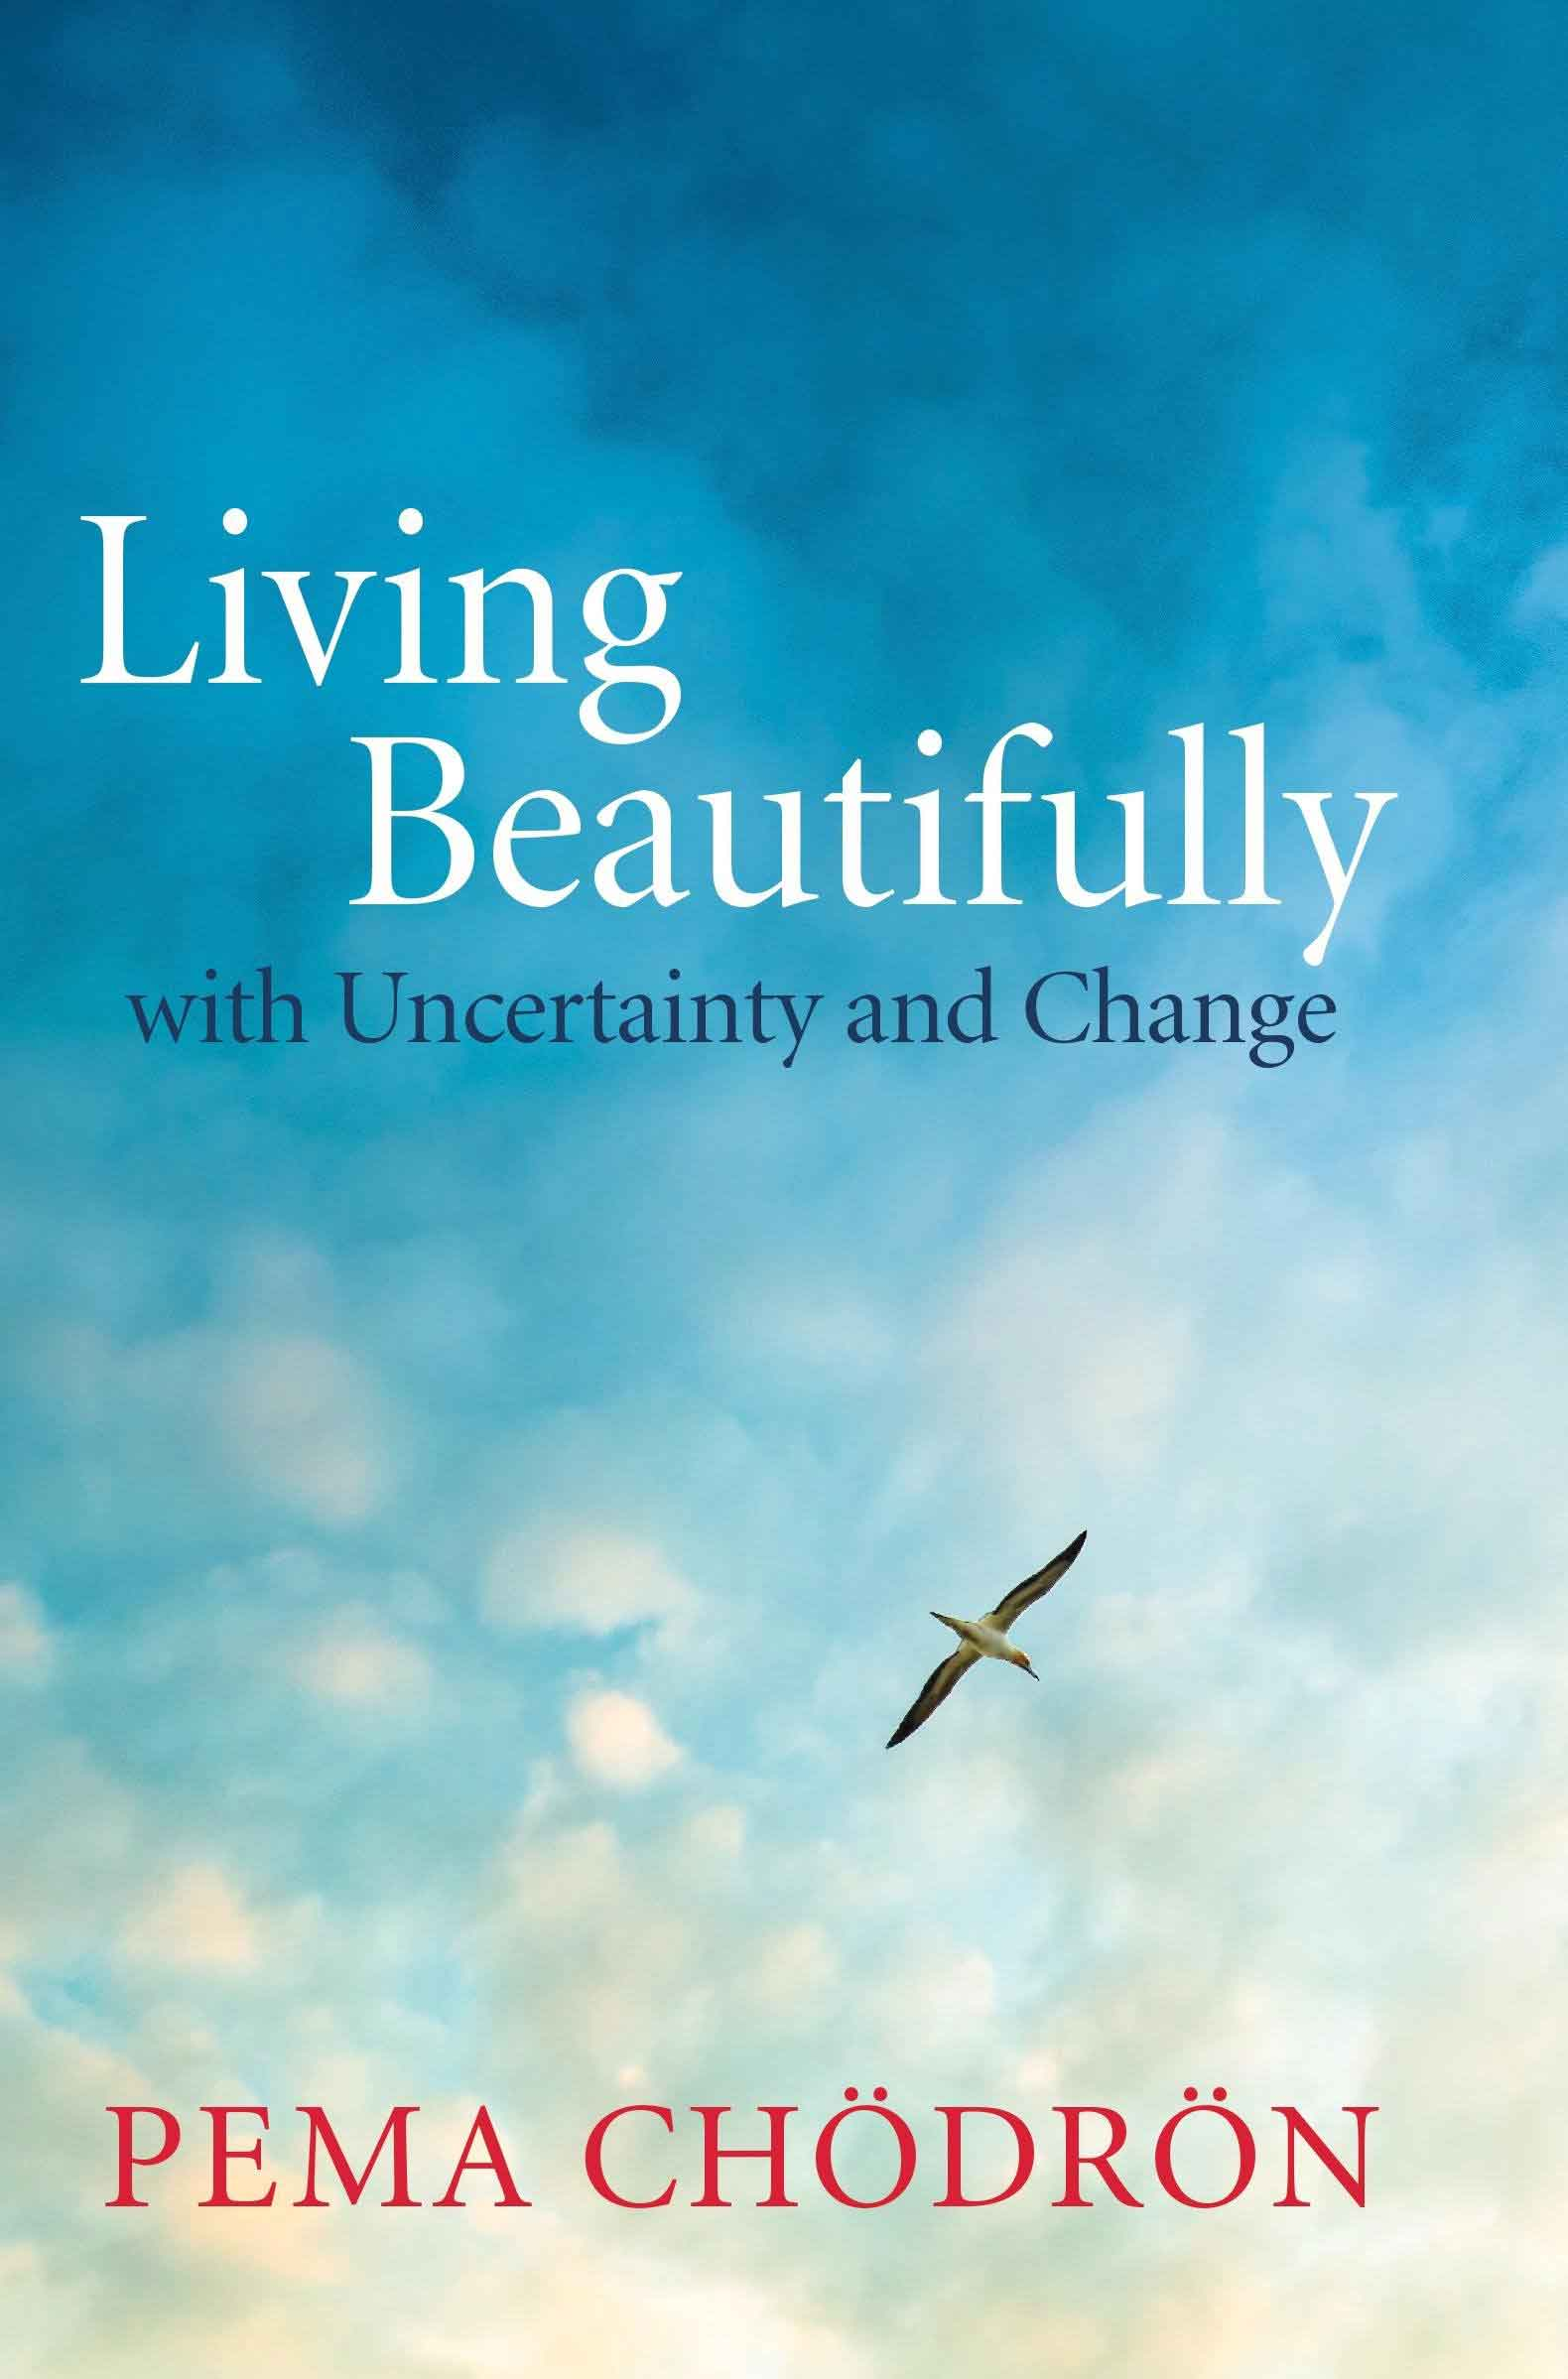 living beautifully with uncertainty and change - book cover